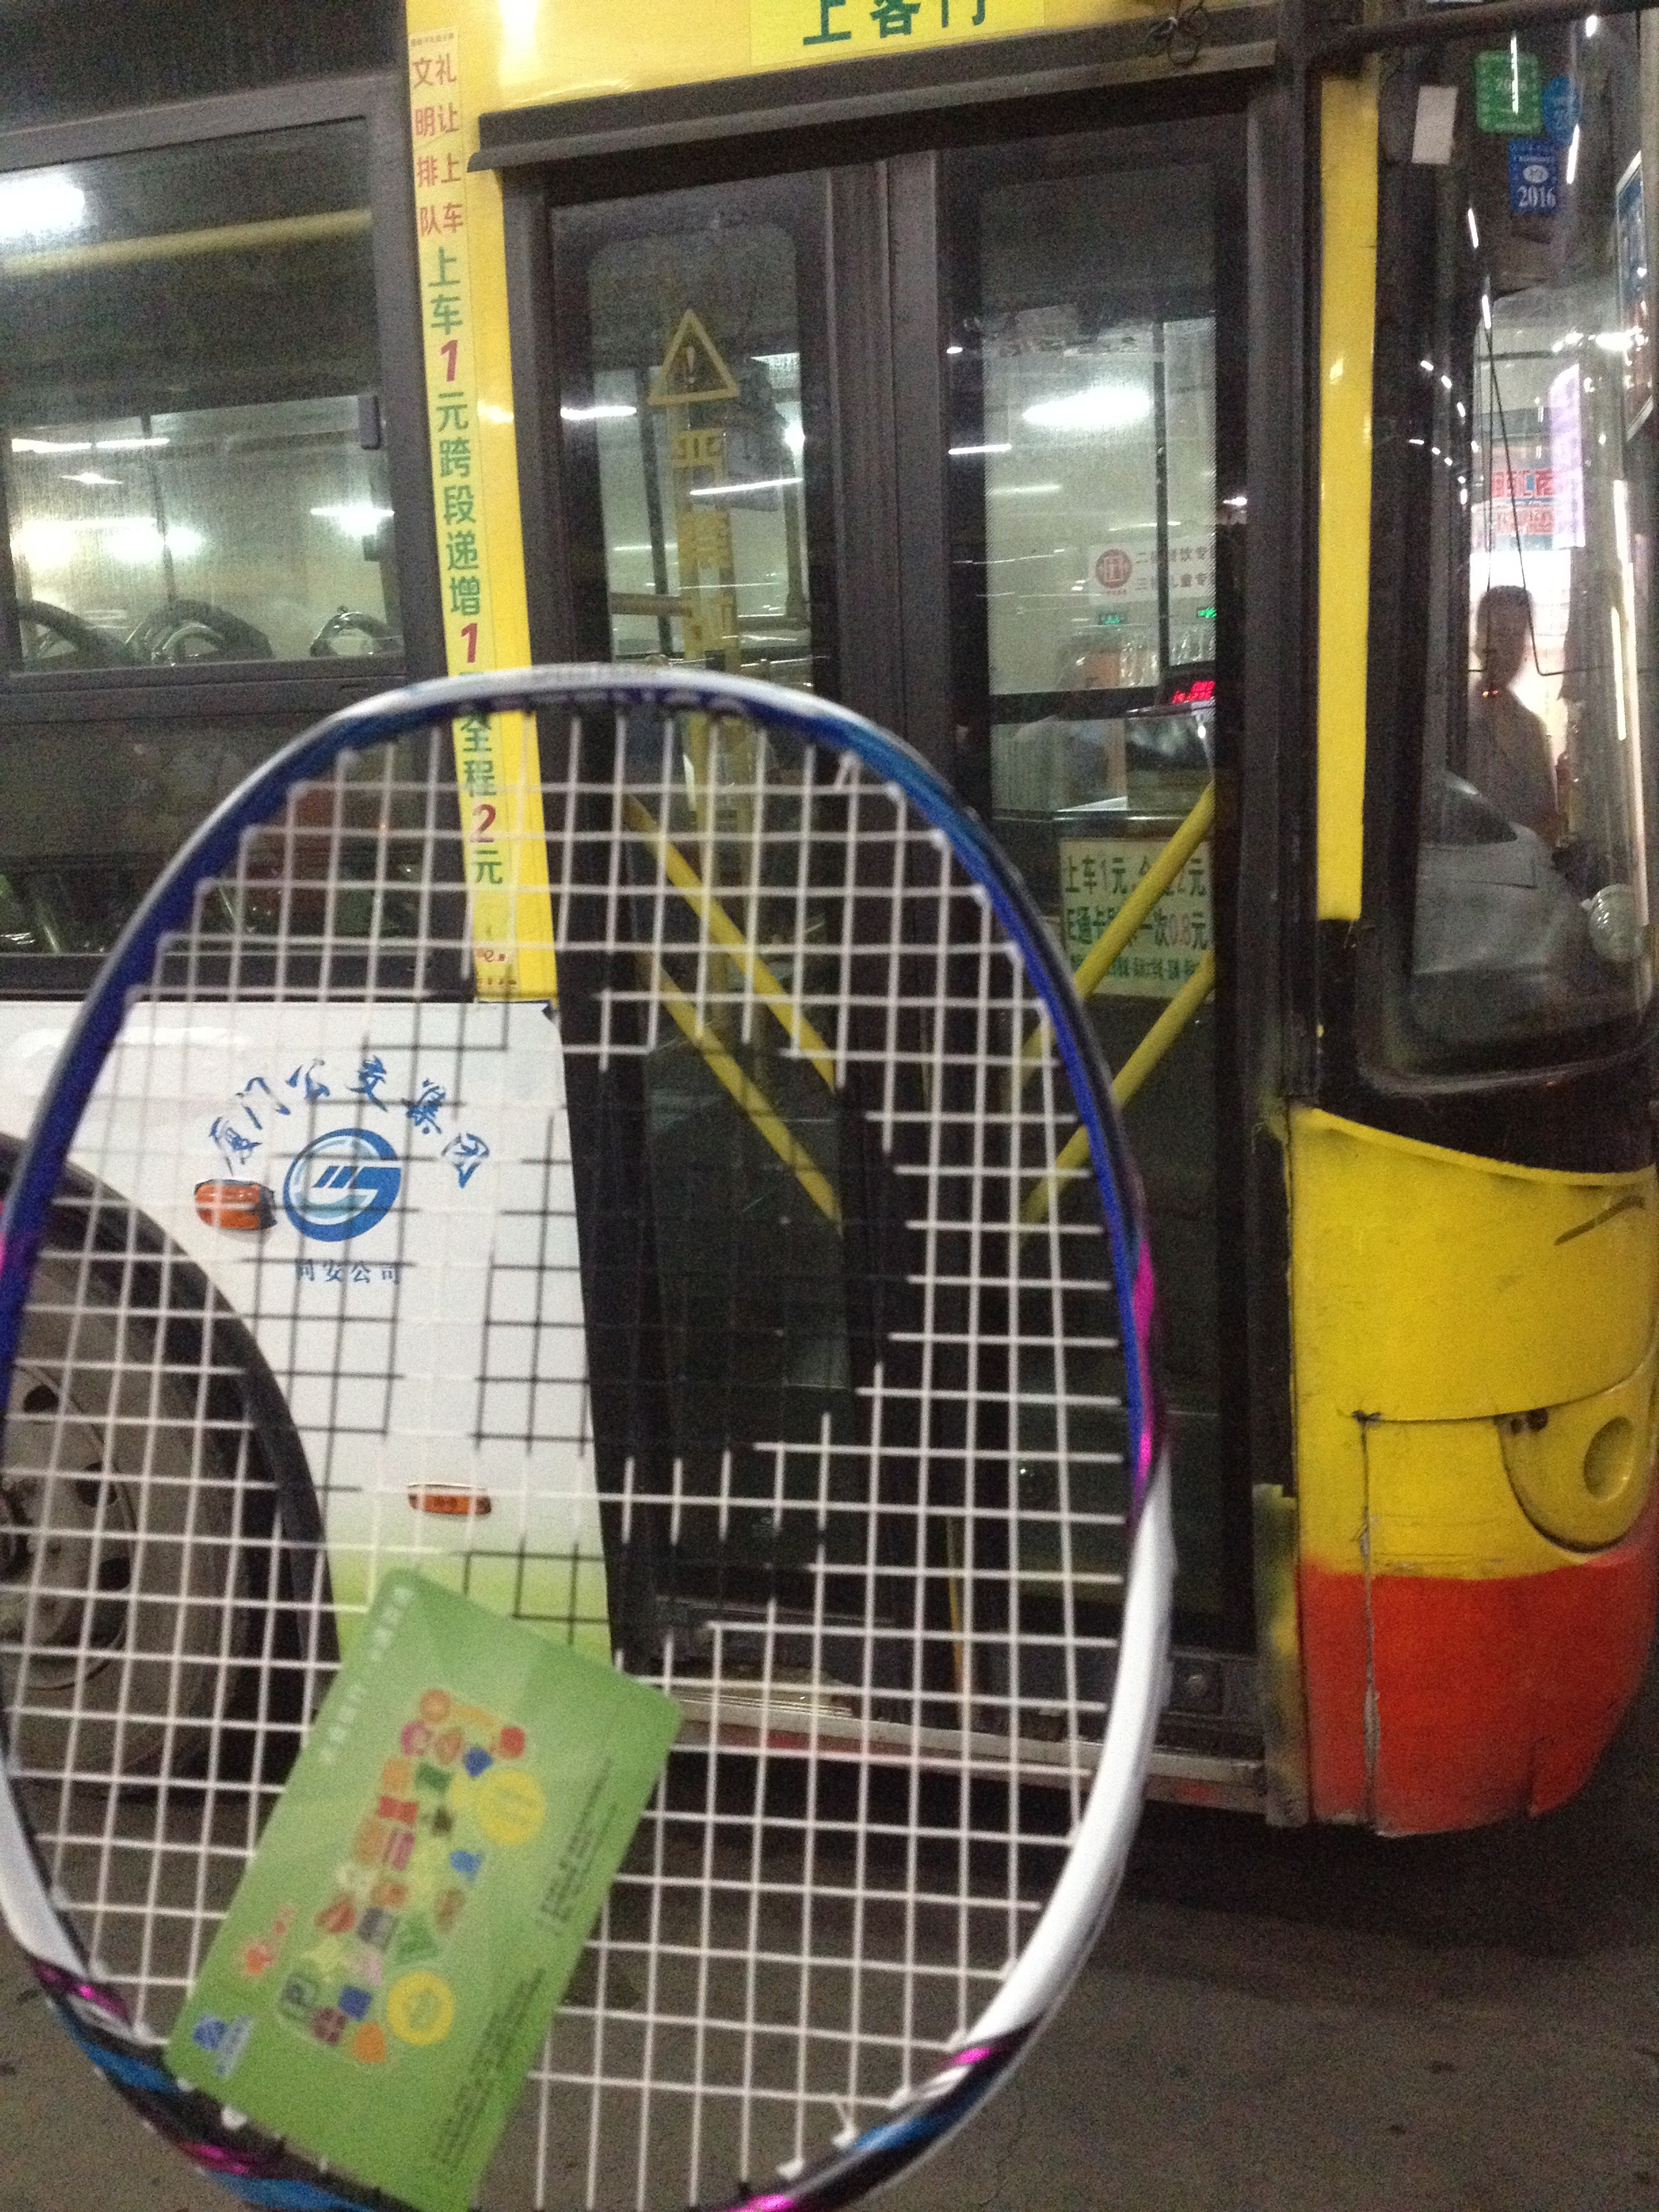 Holding onto it's own bus card, my racket can take any bus it wants to.